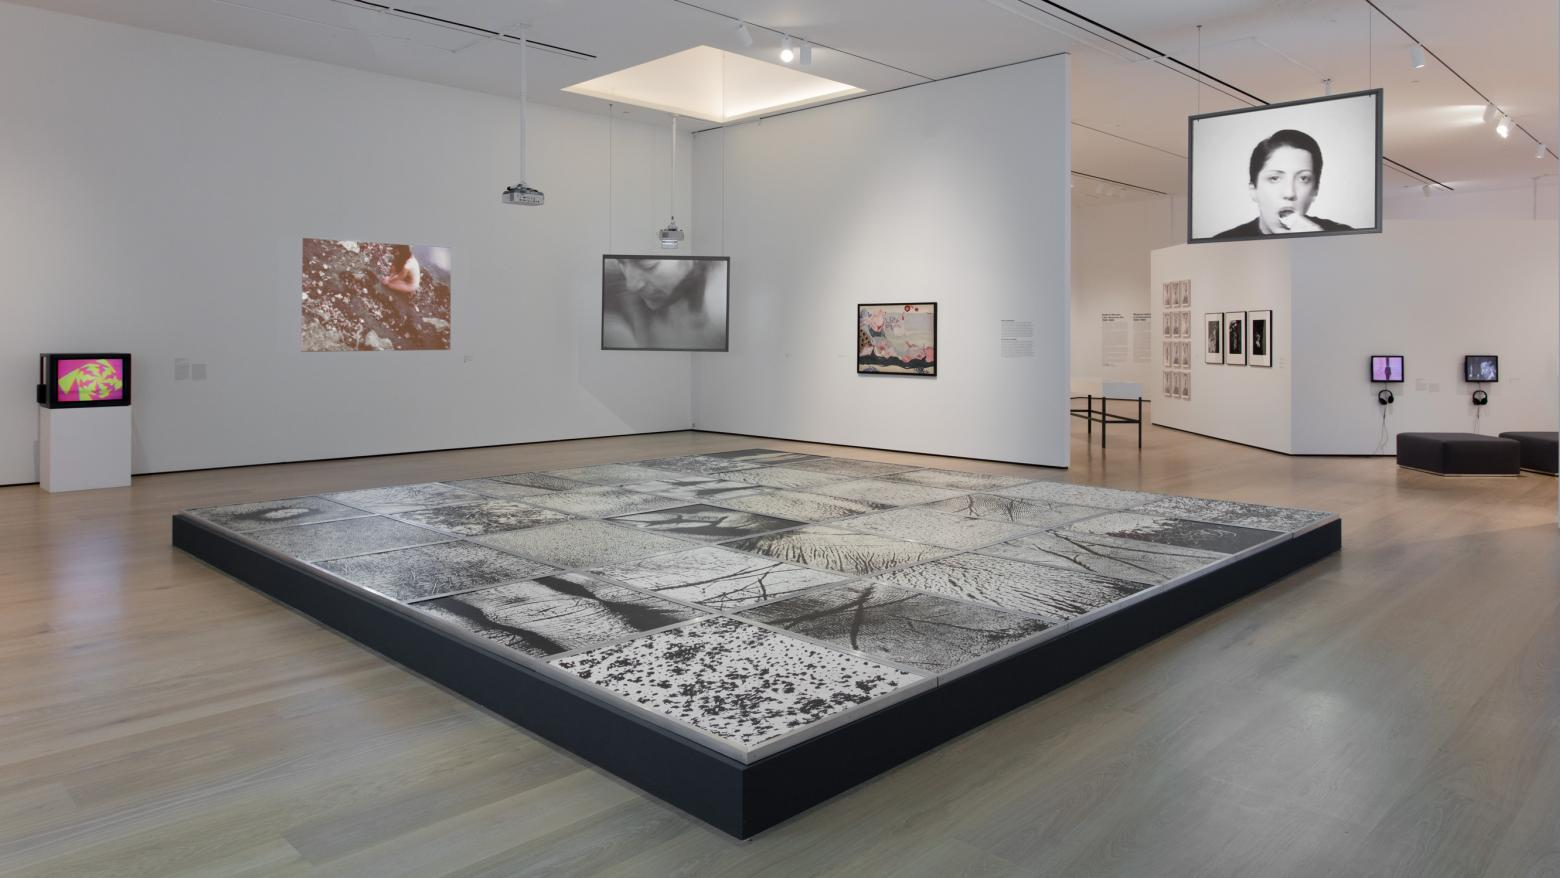 "In the Body as Landscape section of the exhibition, the floor is dominated by Epidermic Scapes (1977/1982), an installation by Vera Chaves Barcellos composed of large scale photographs showing details of the body. Projected on the left wall is Ana Mendiata's Corazón de Roca con Sangre (Rock Heart with Blood) (1975), in which she takes a heart-shaped rock and covers it in blood, laying it in one of her ""Siluetas"" sculptures before placing her naked body over it."